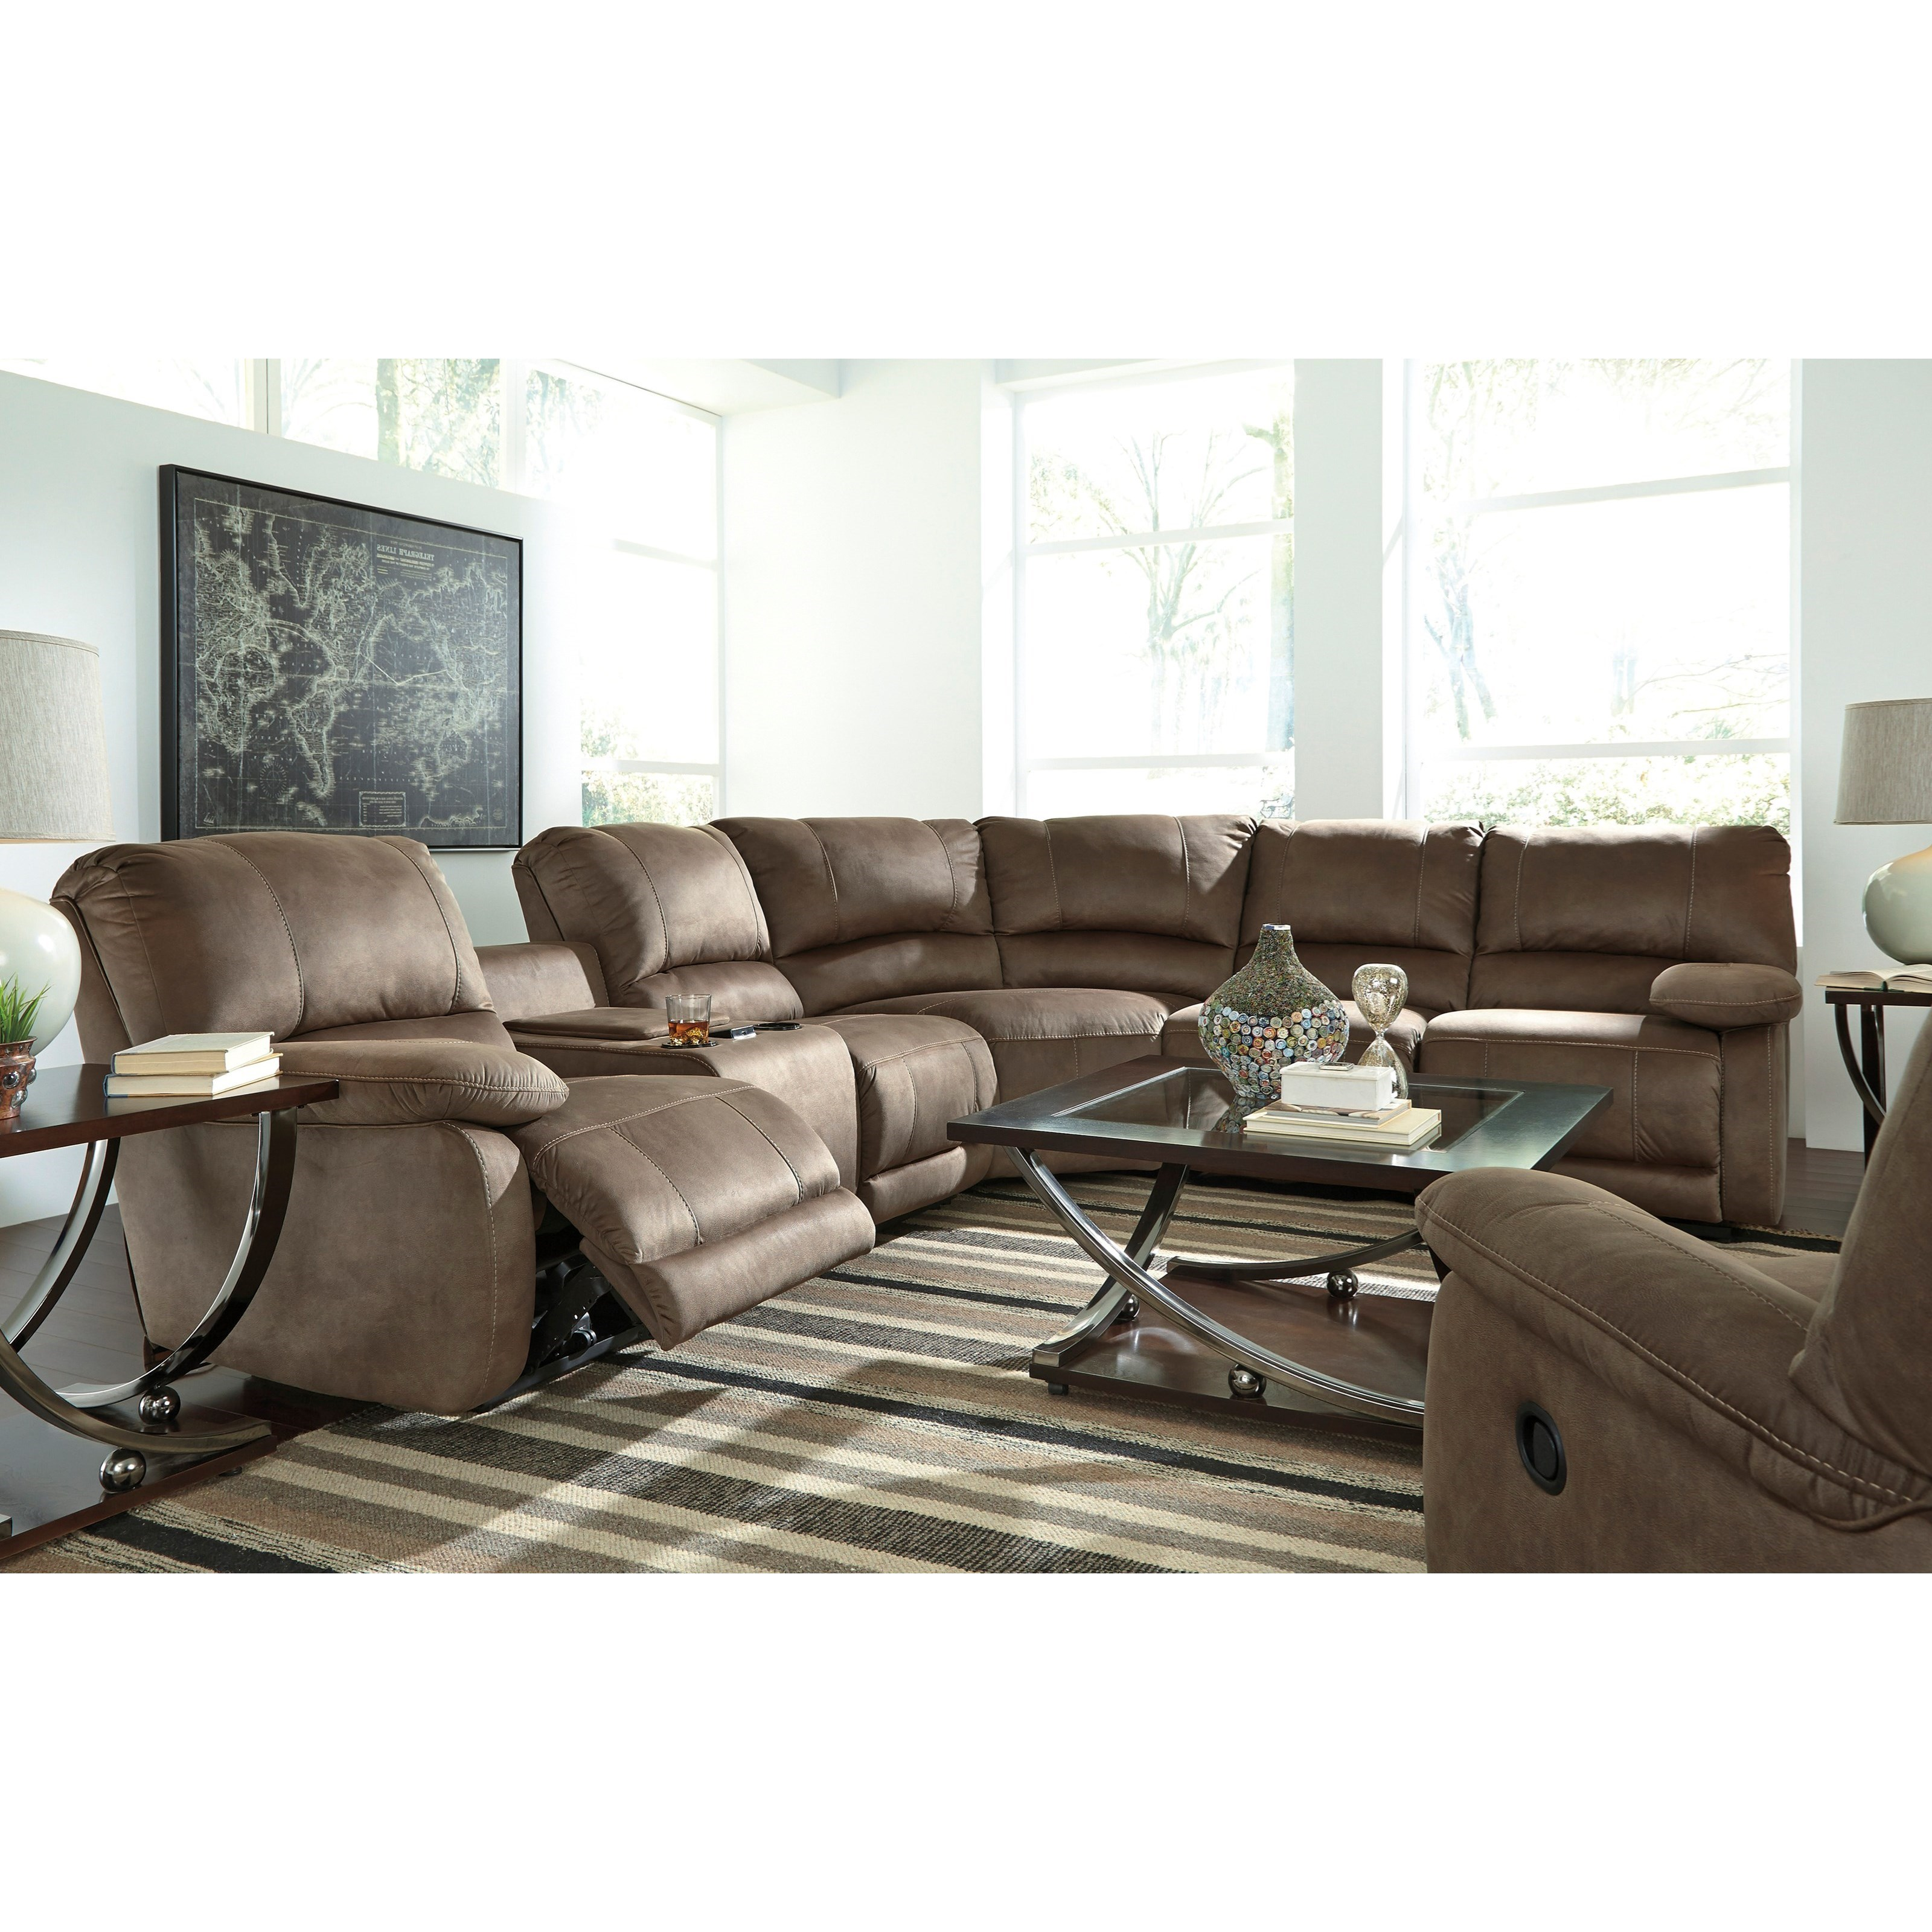 styleline carlin reclining living room group efo On efo furniture outlet